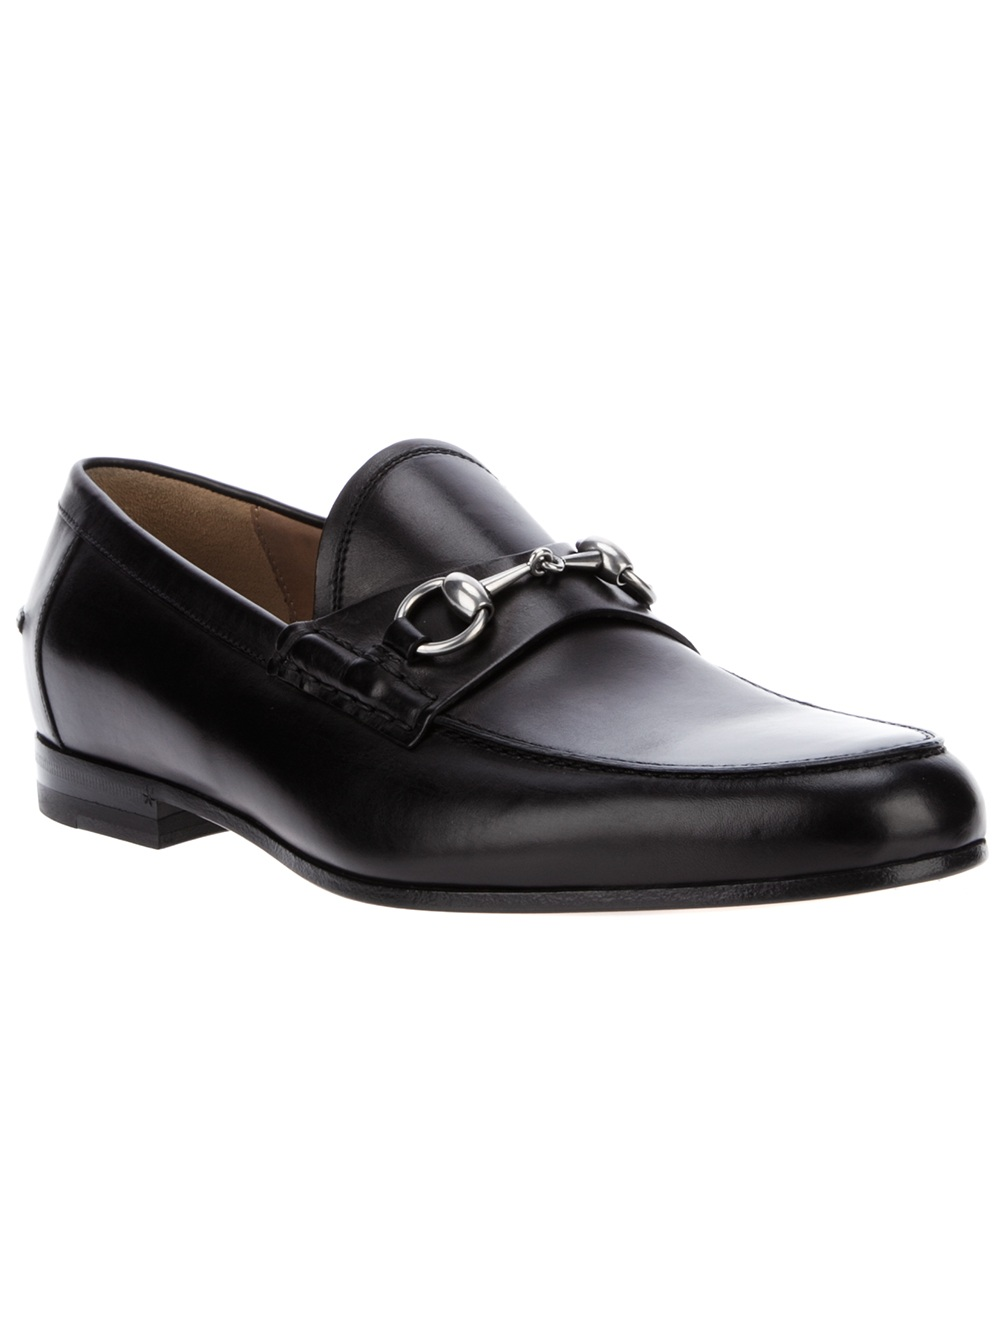 mens black gucci loafers 28 images gucci bulgaro mens size 12 black leather loafers shoes. Black Bedroom Furniture Sets. Home Design Ideas